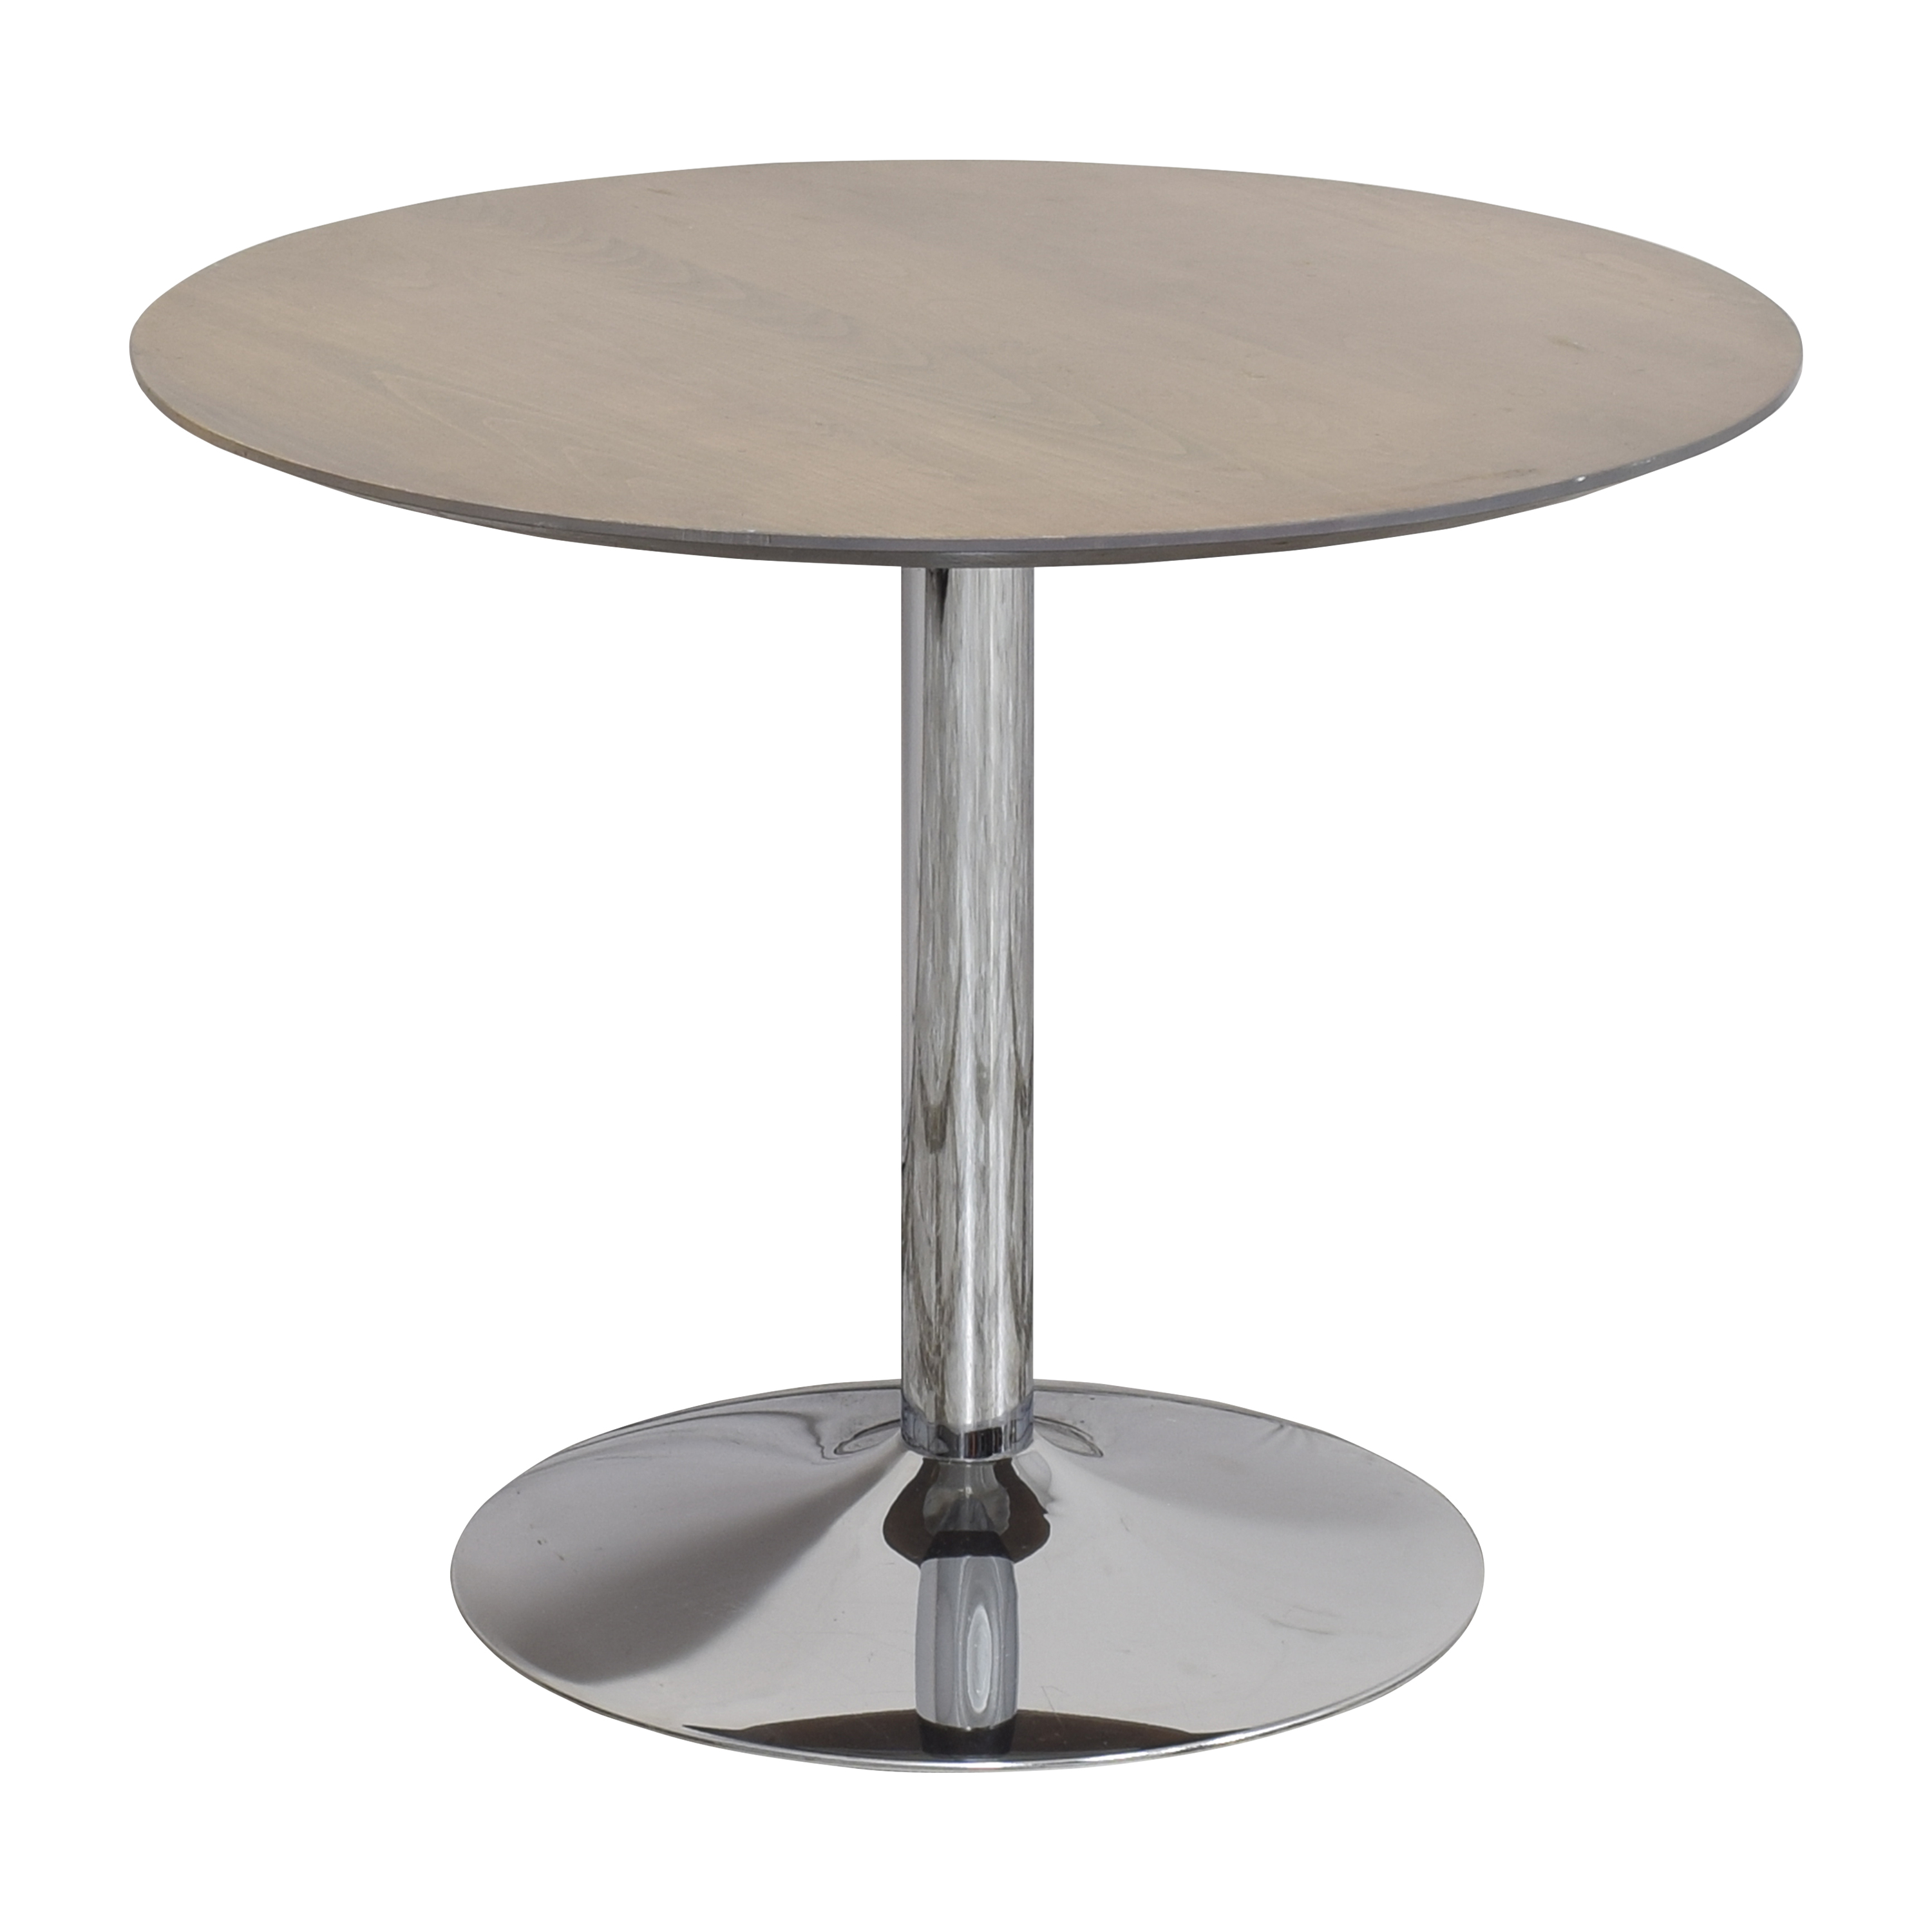 buy Room & Board Aria Round Dining Table Room & Board Tables